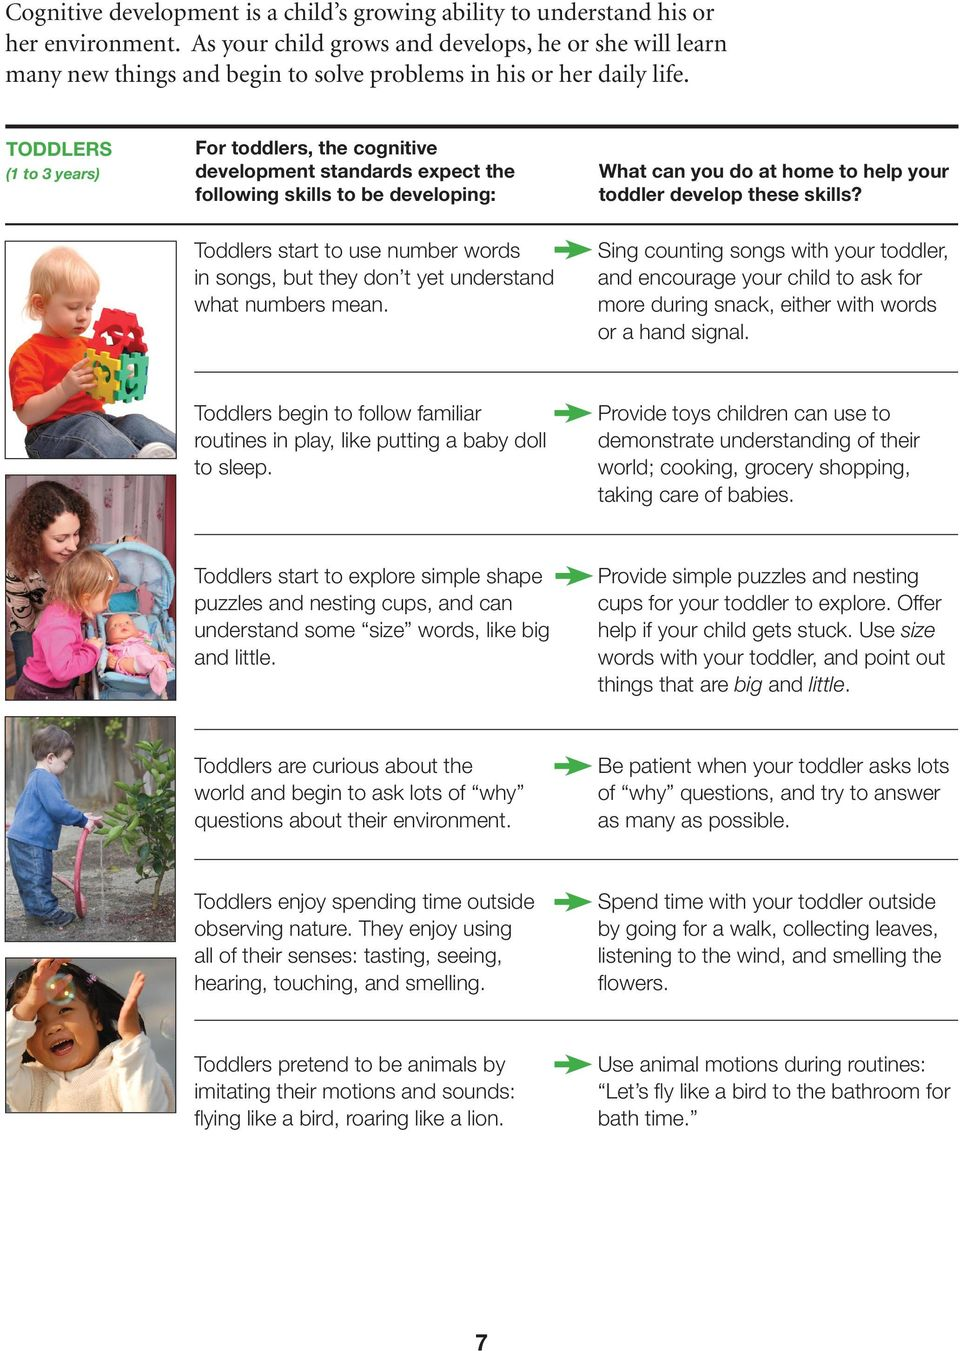 TODDLERS (1 to 3 years) For toddlers, the cognitive development standards expect the following skills to be developing: What can you do at home to help your toddler develop these skills?